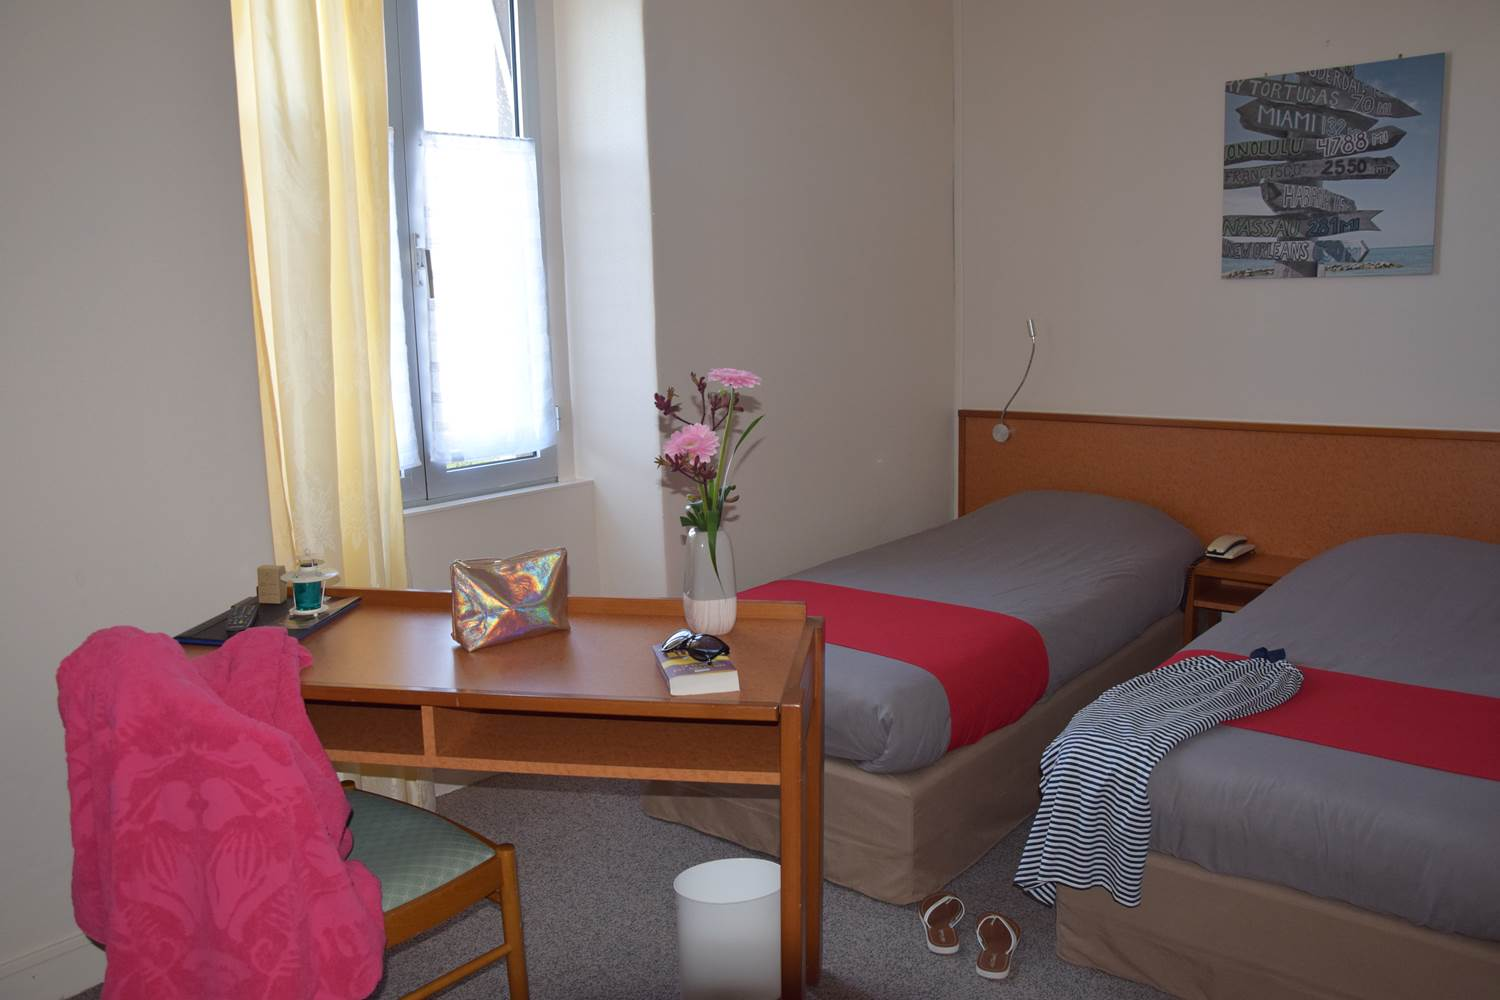 CHAMBRE LITS JUMEAUX 2 PERS BIS ©